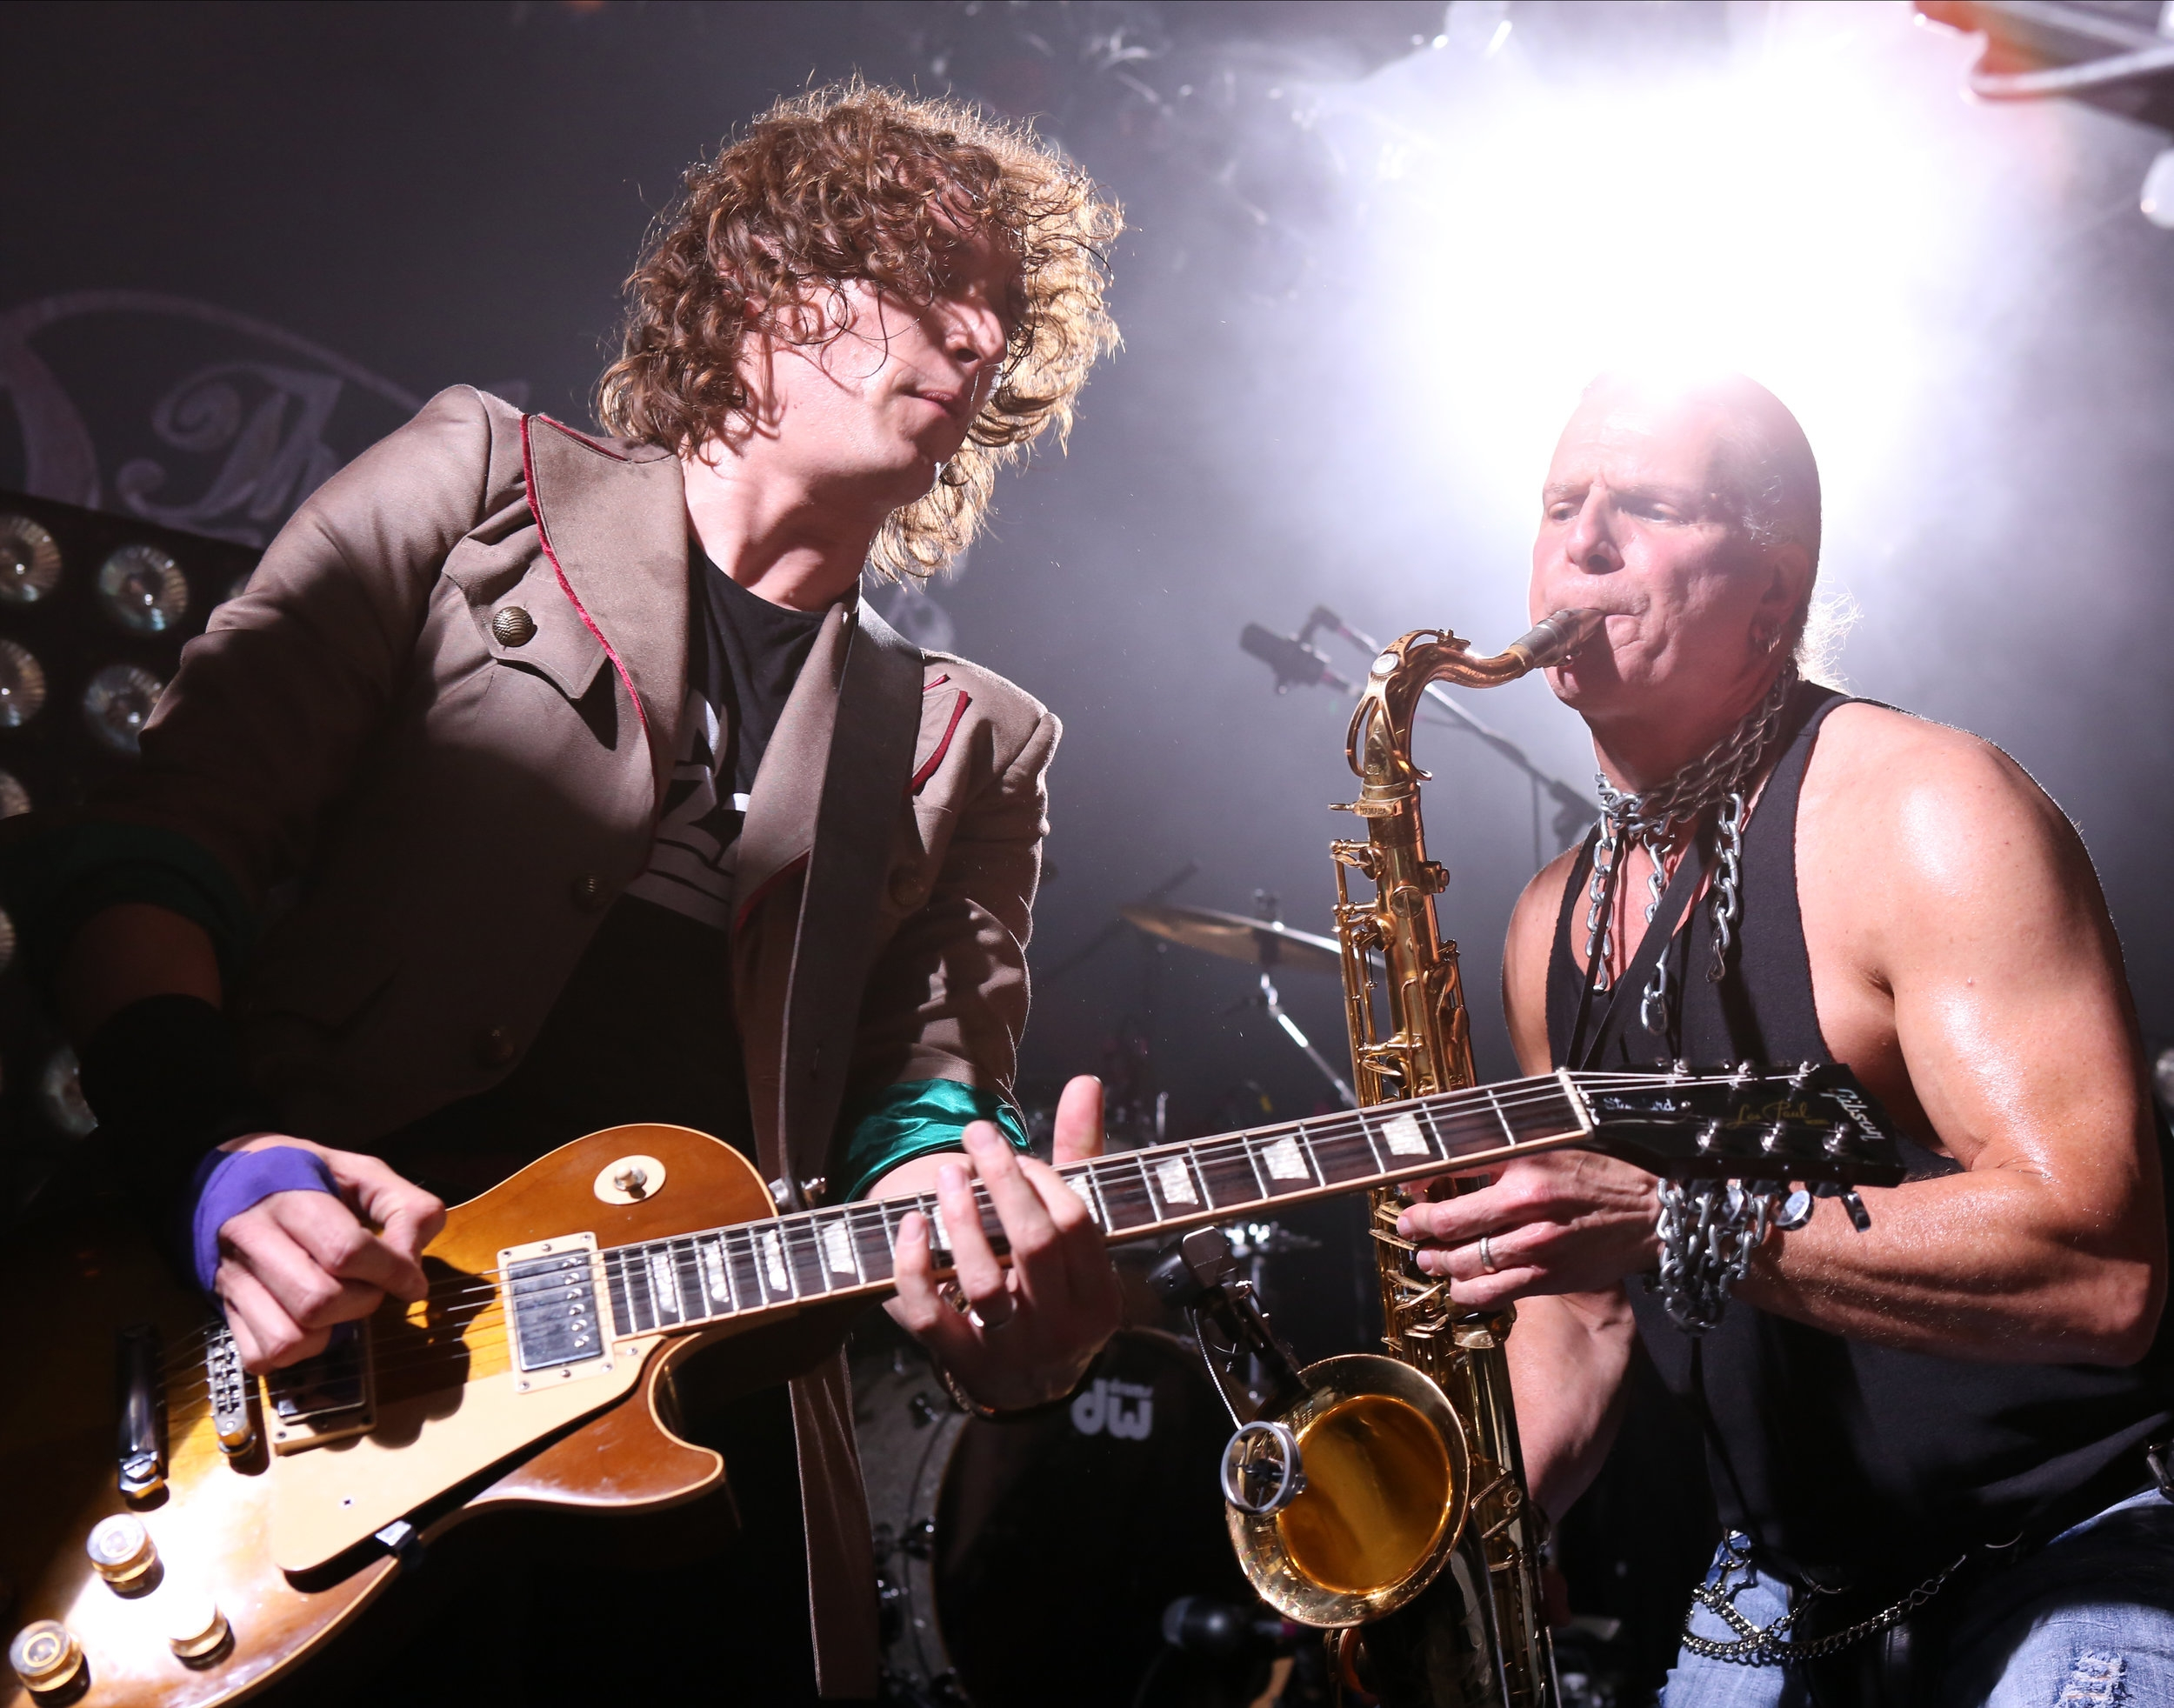 Dan Hawkins and Timmy Cappello